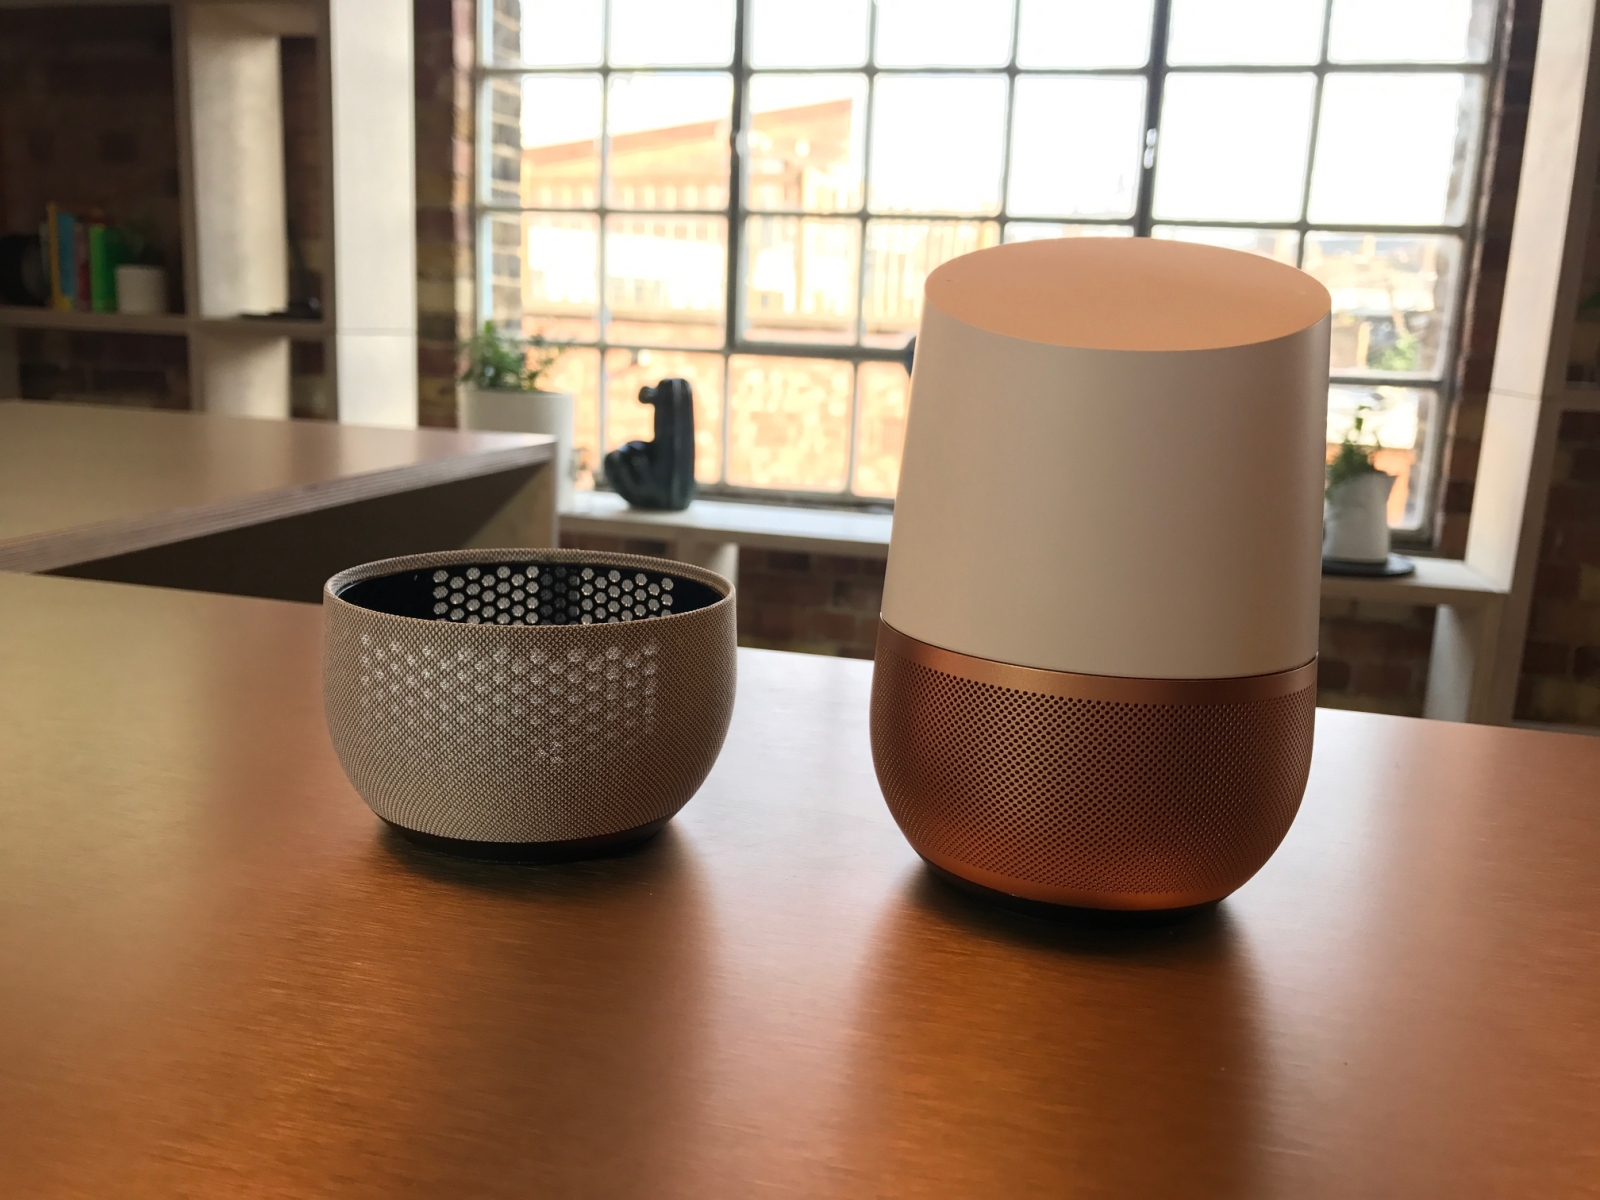 google home review can google 39 s smart speaker topple amazon echo and alexa. Black Bedroom Furniture Sets. Home Design Ideas